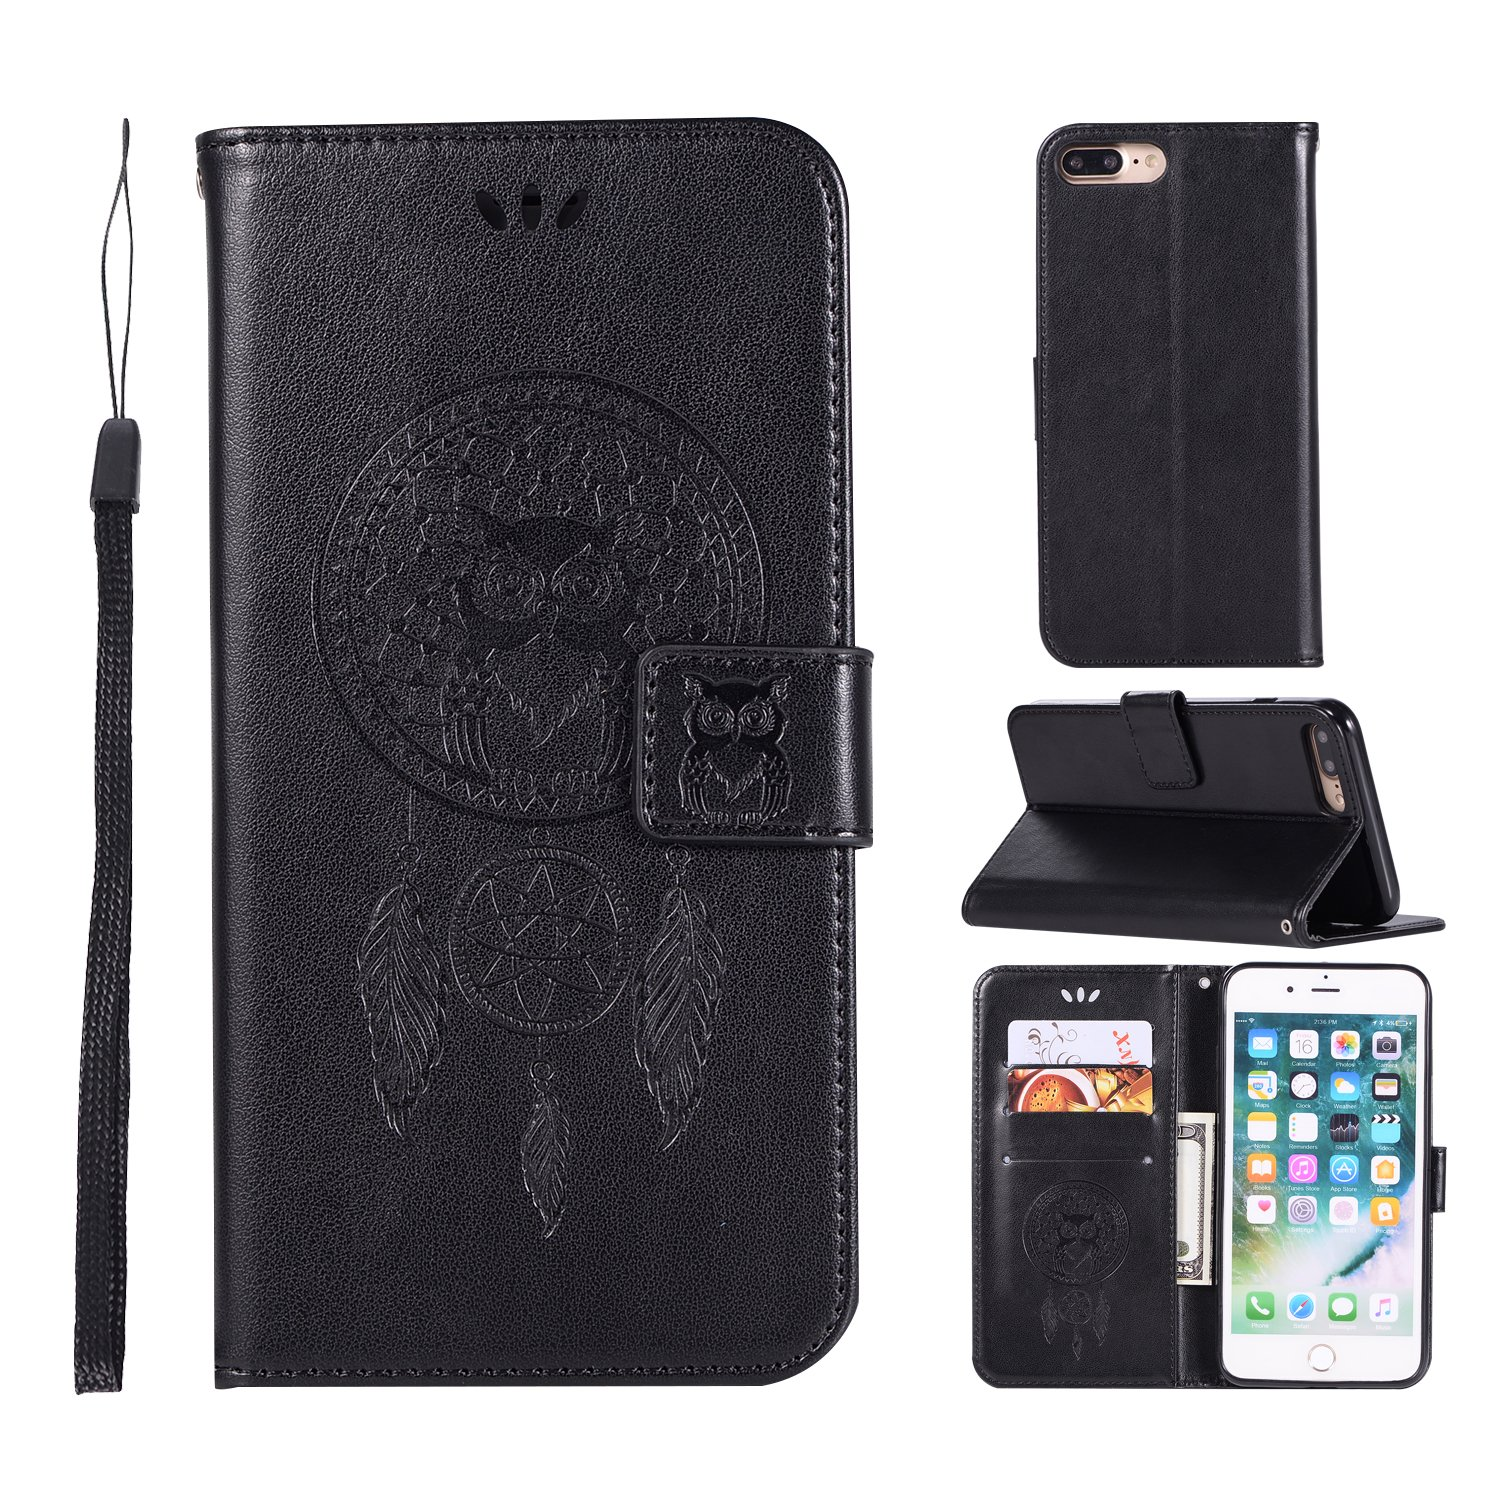 iPhone 8 Plus Case, AIIYG DS Classic 3D Owl Dream Catcher Pattern [Kickstand Feature] Flip Folio Leather Wallet Case with ID and Credit Card Pockets for Apple iPhone 7 8 Plus (Black Owl)